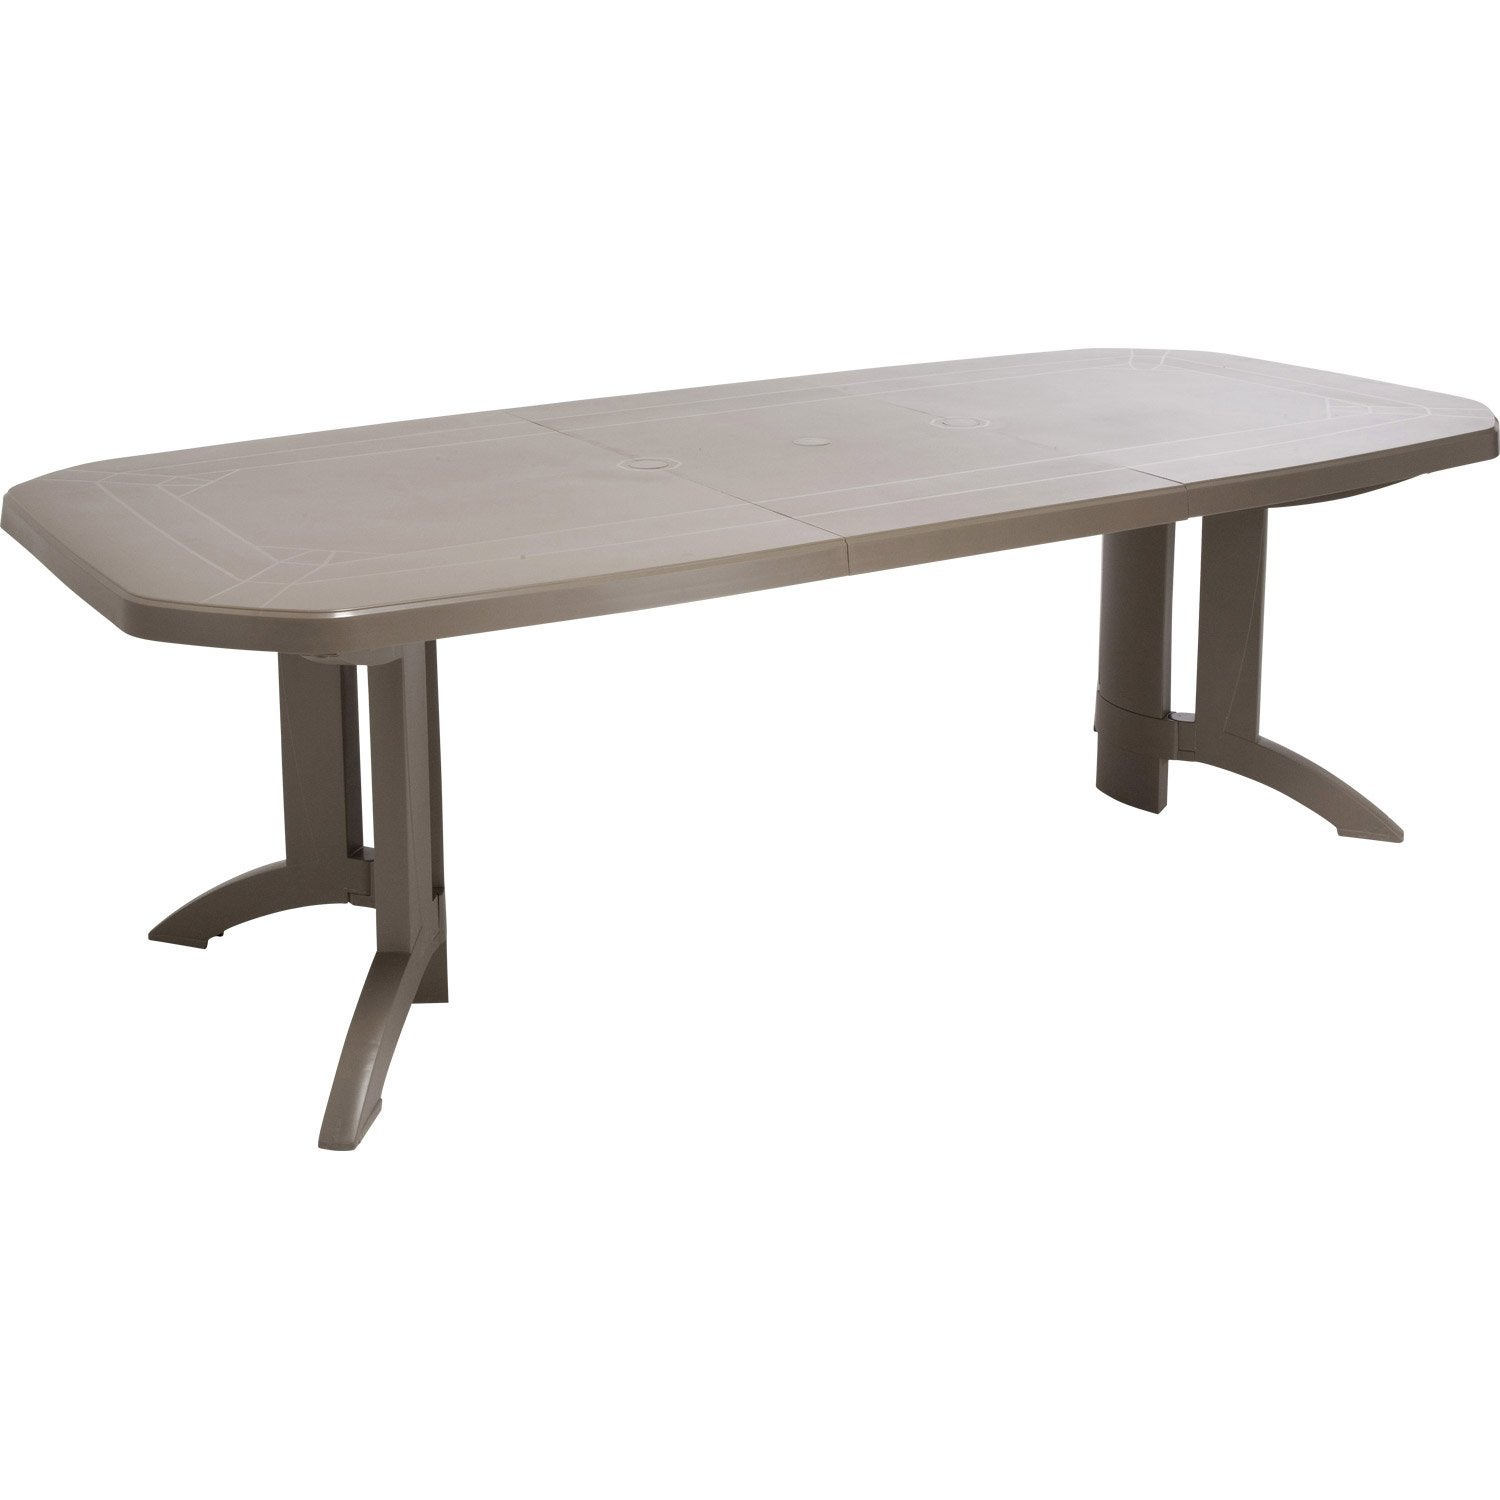 Salon de jardin grosfillex leroy merlin for Leroy merlin table jardin